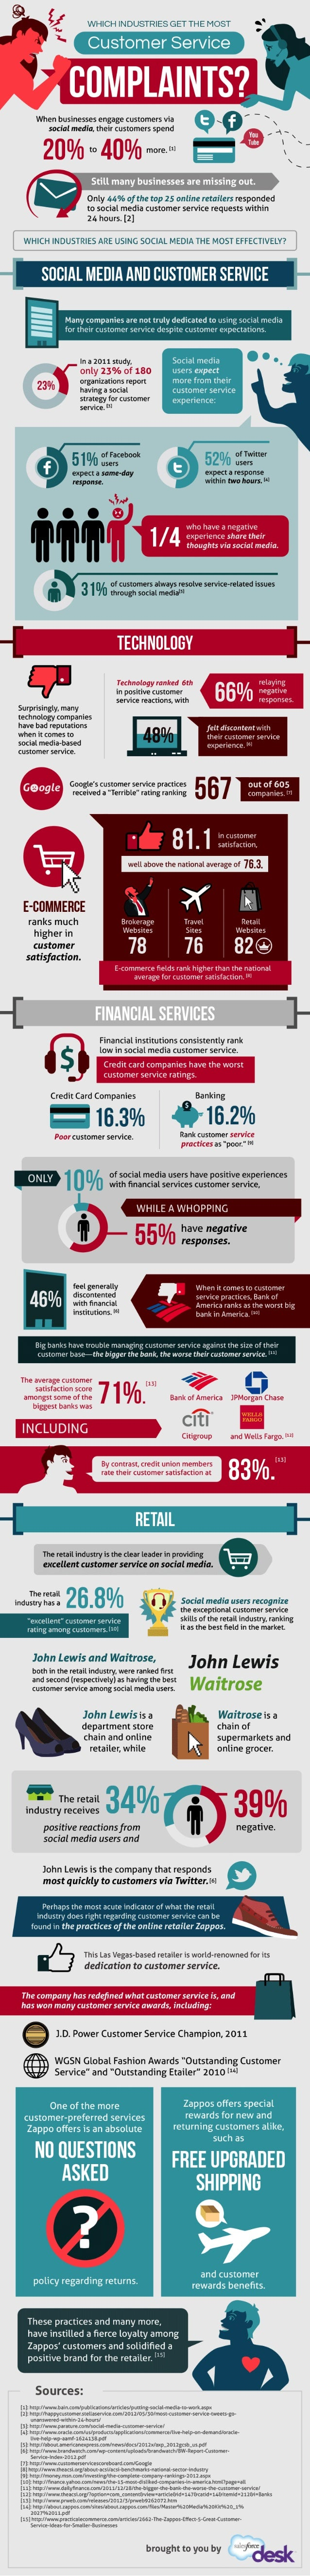 The Industries With the Most Customer Complaints